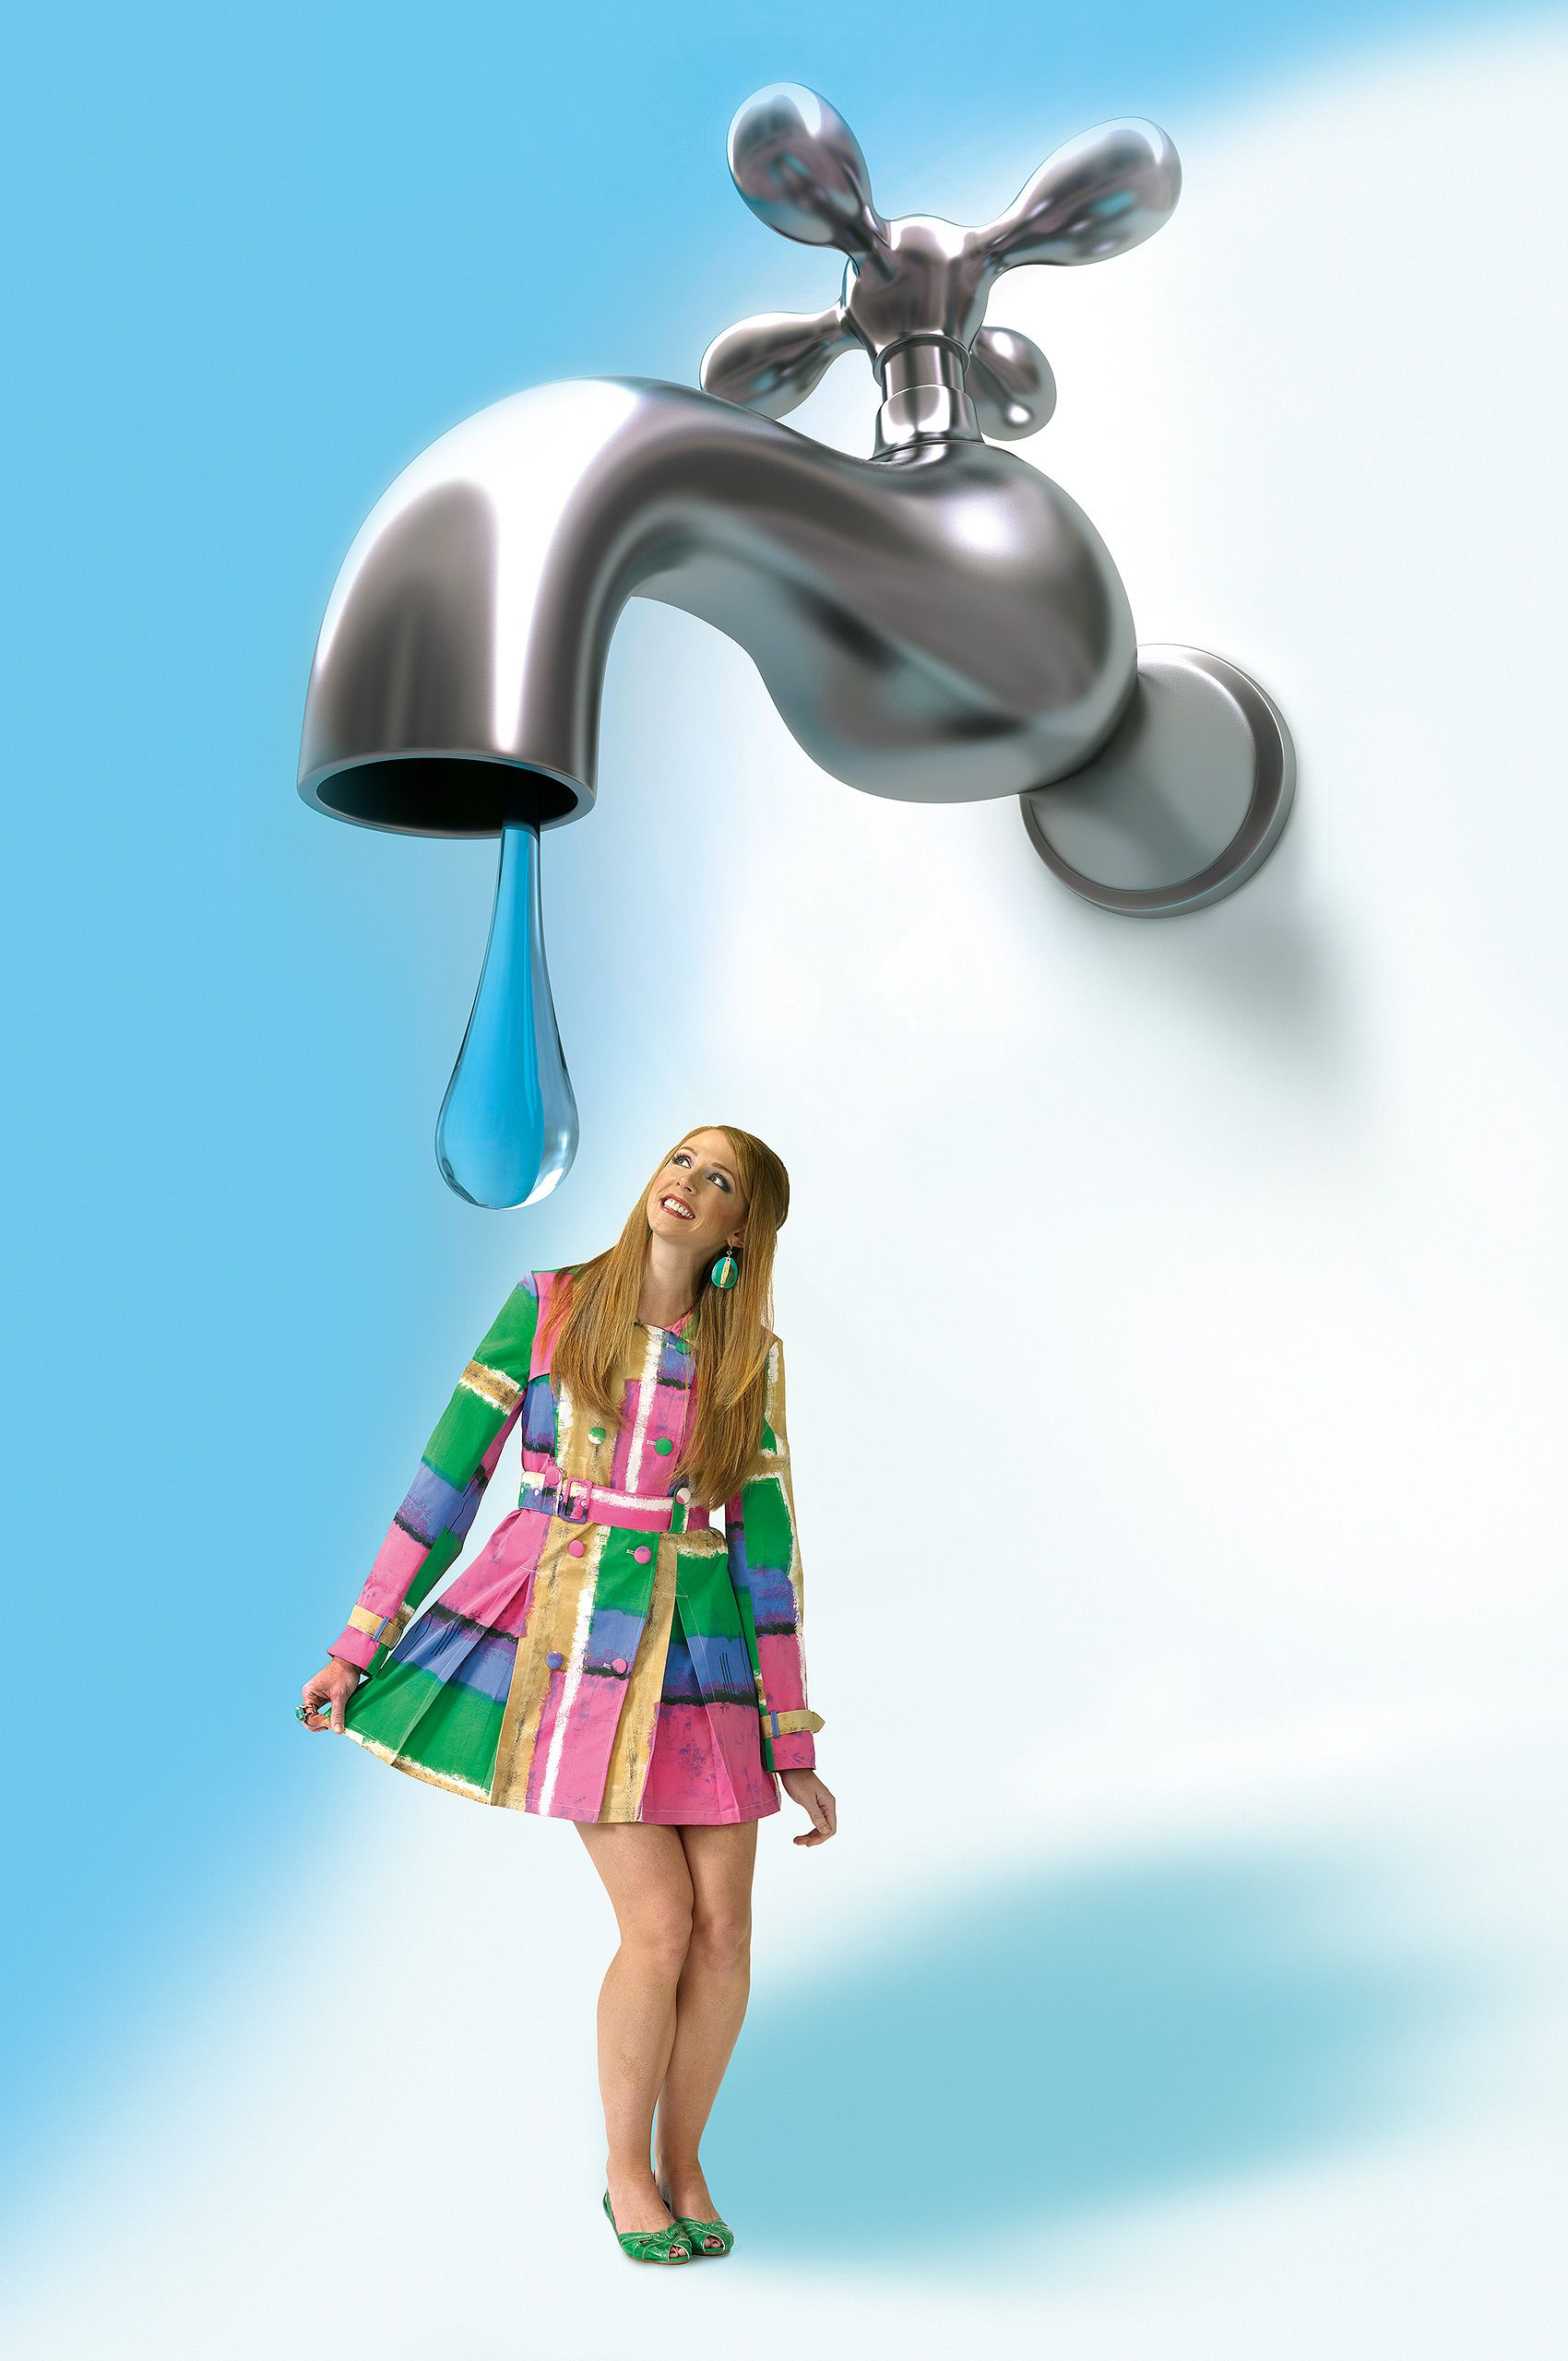 4-faucet_chirsty_02.jpg